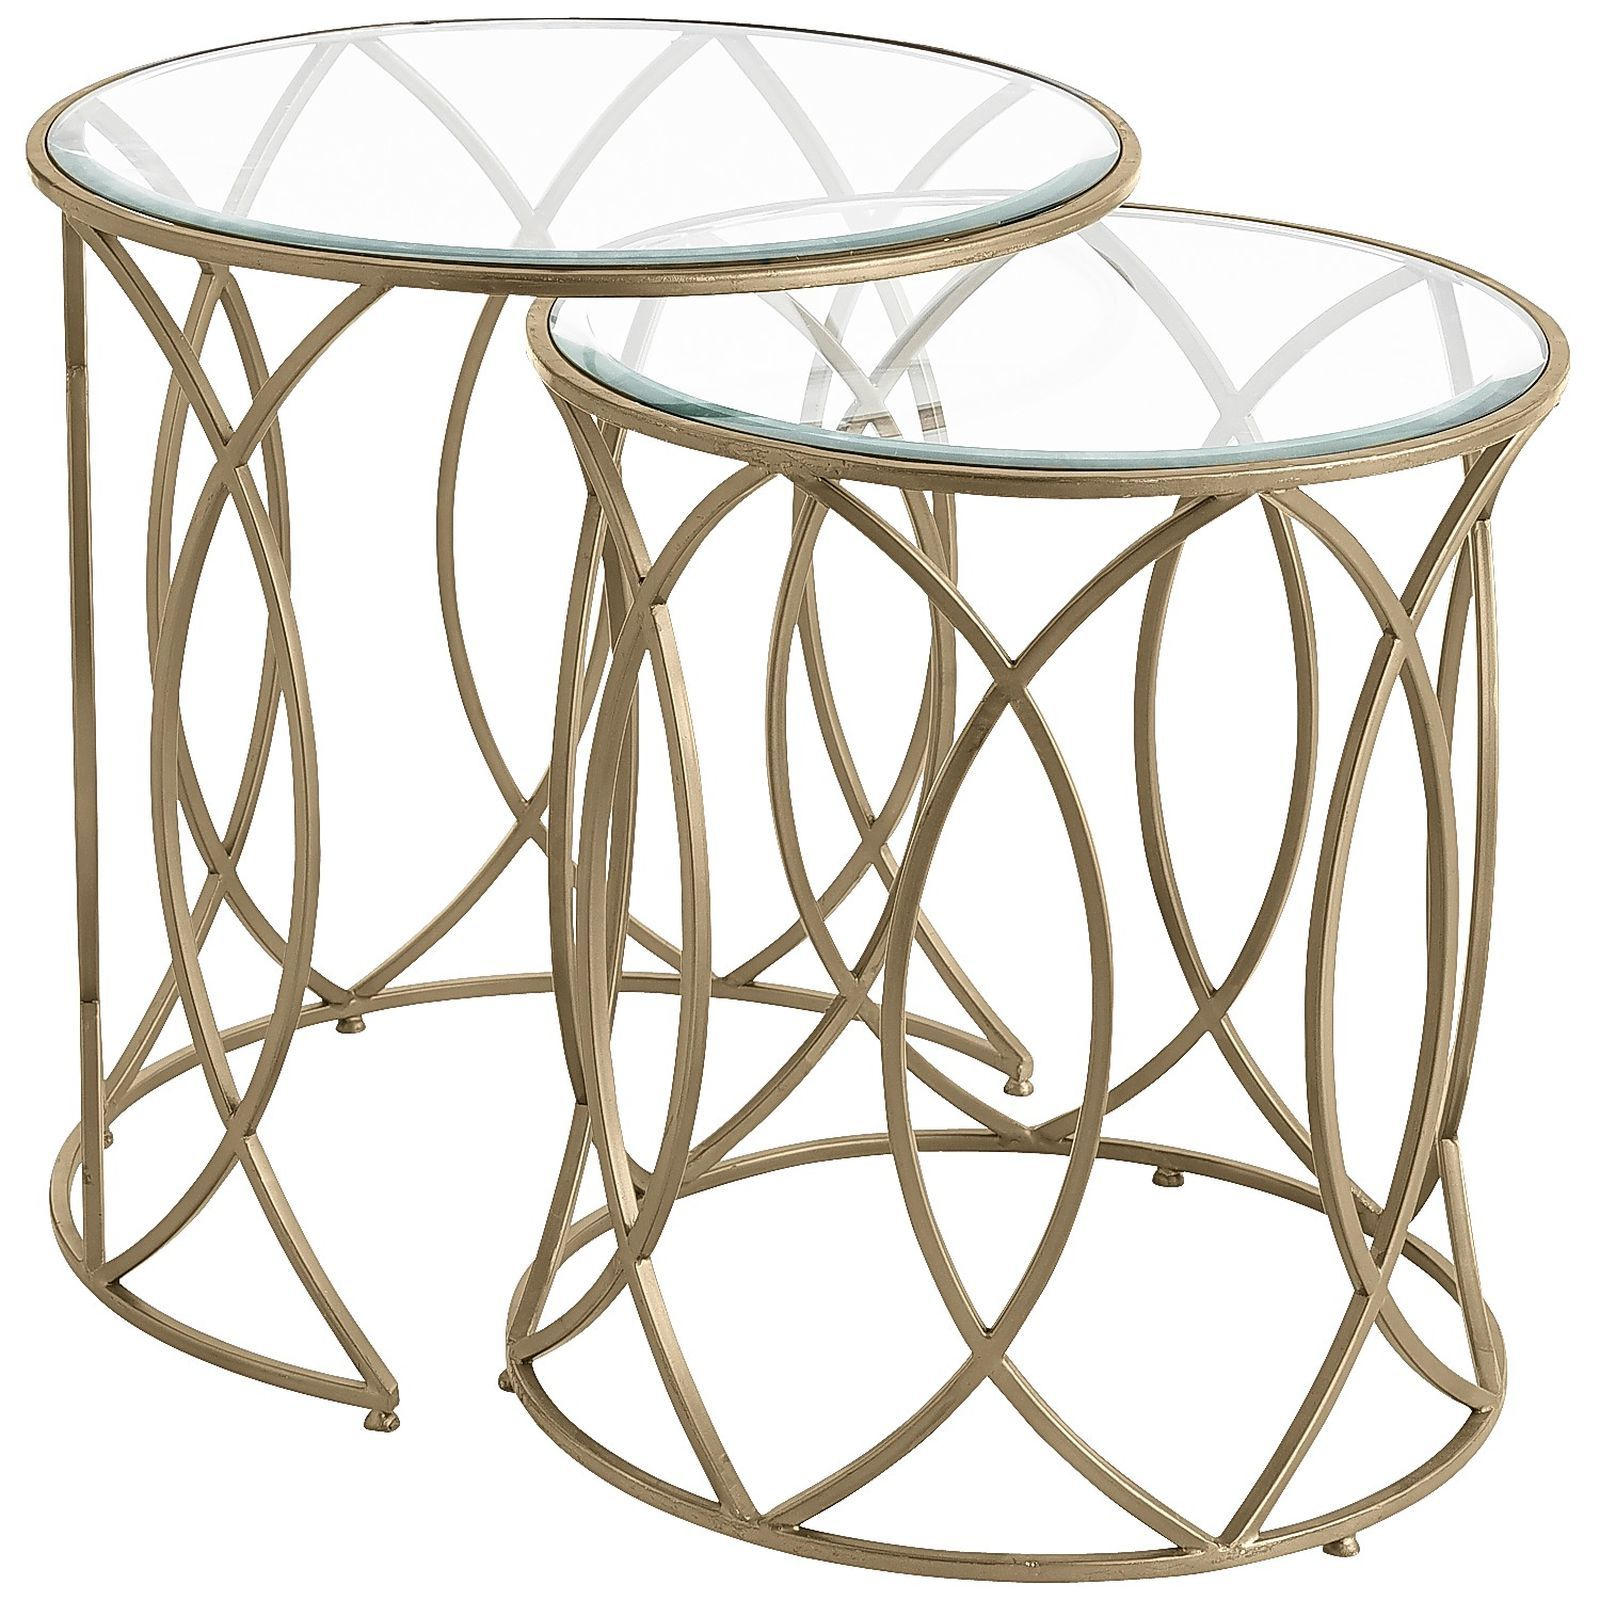 Elana bronze iron round nesting tables geometric designs living elana bronze iron round nesting tables geotapseo Choice Image